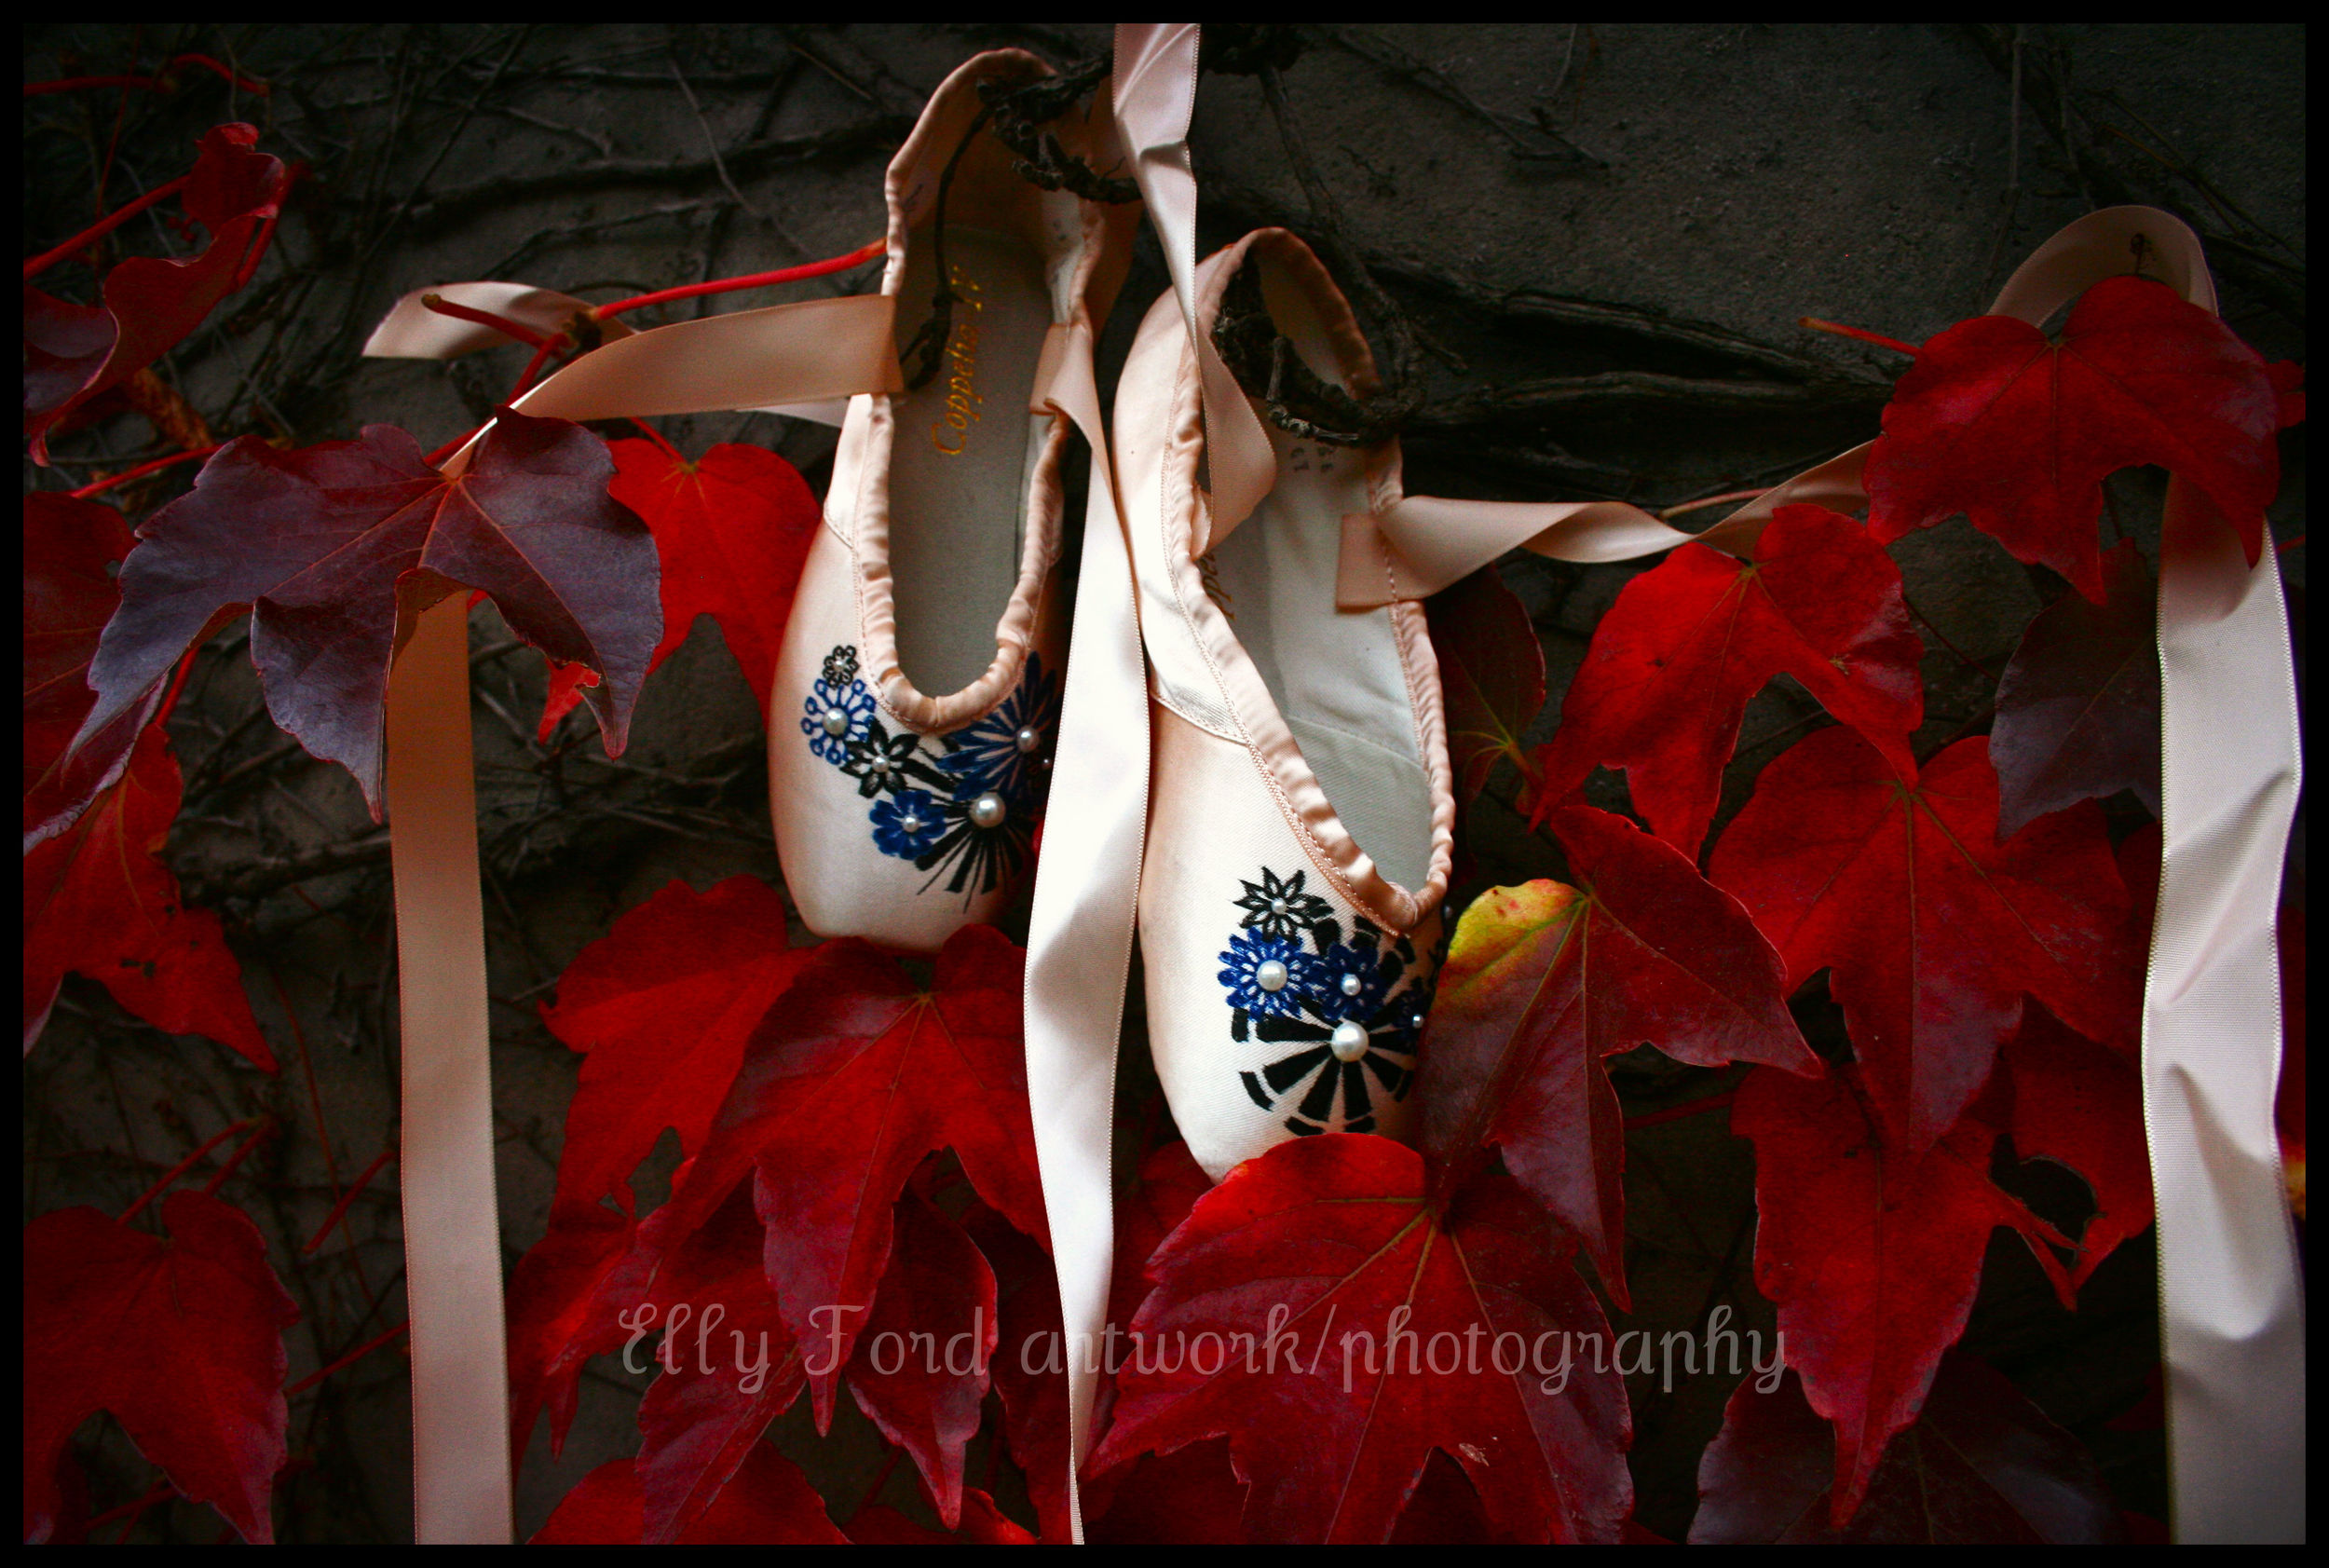 Our abstract floral pair thought they had it in the bag!